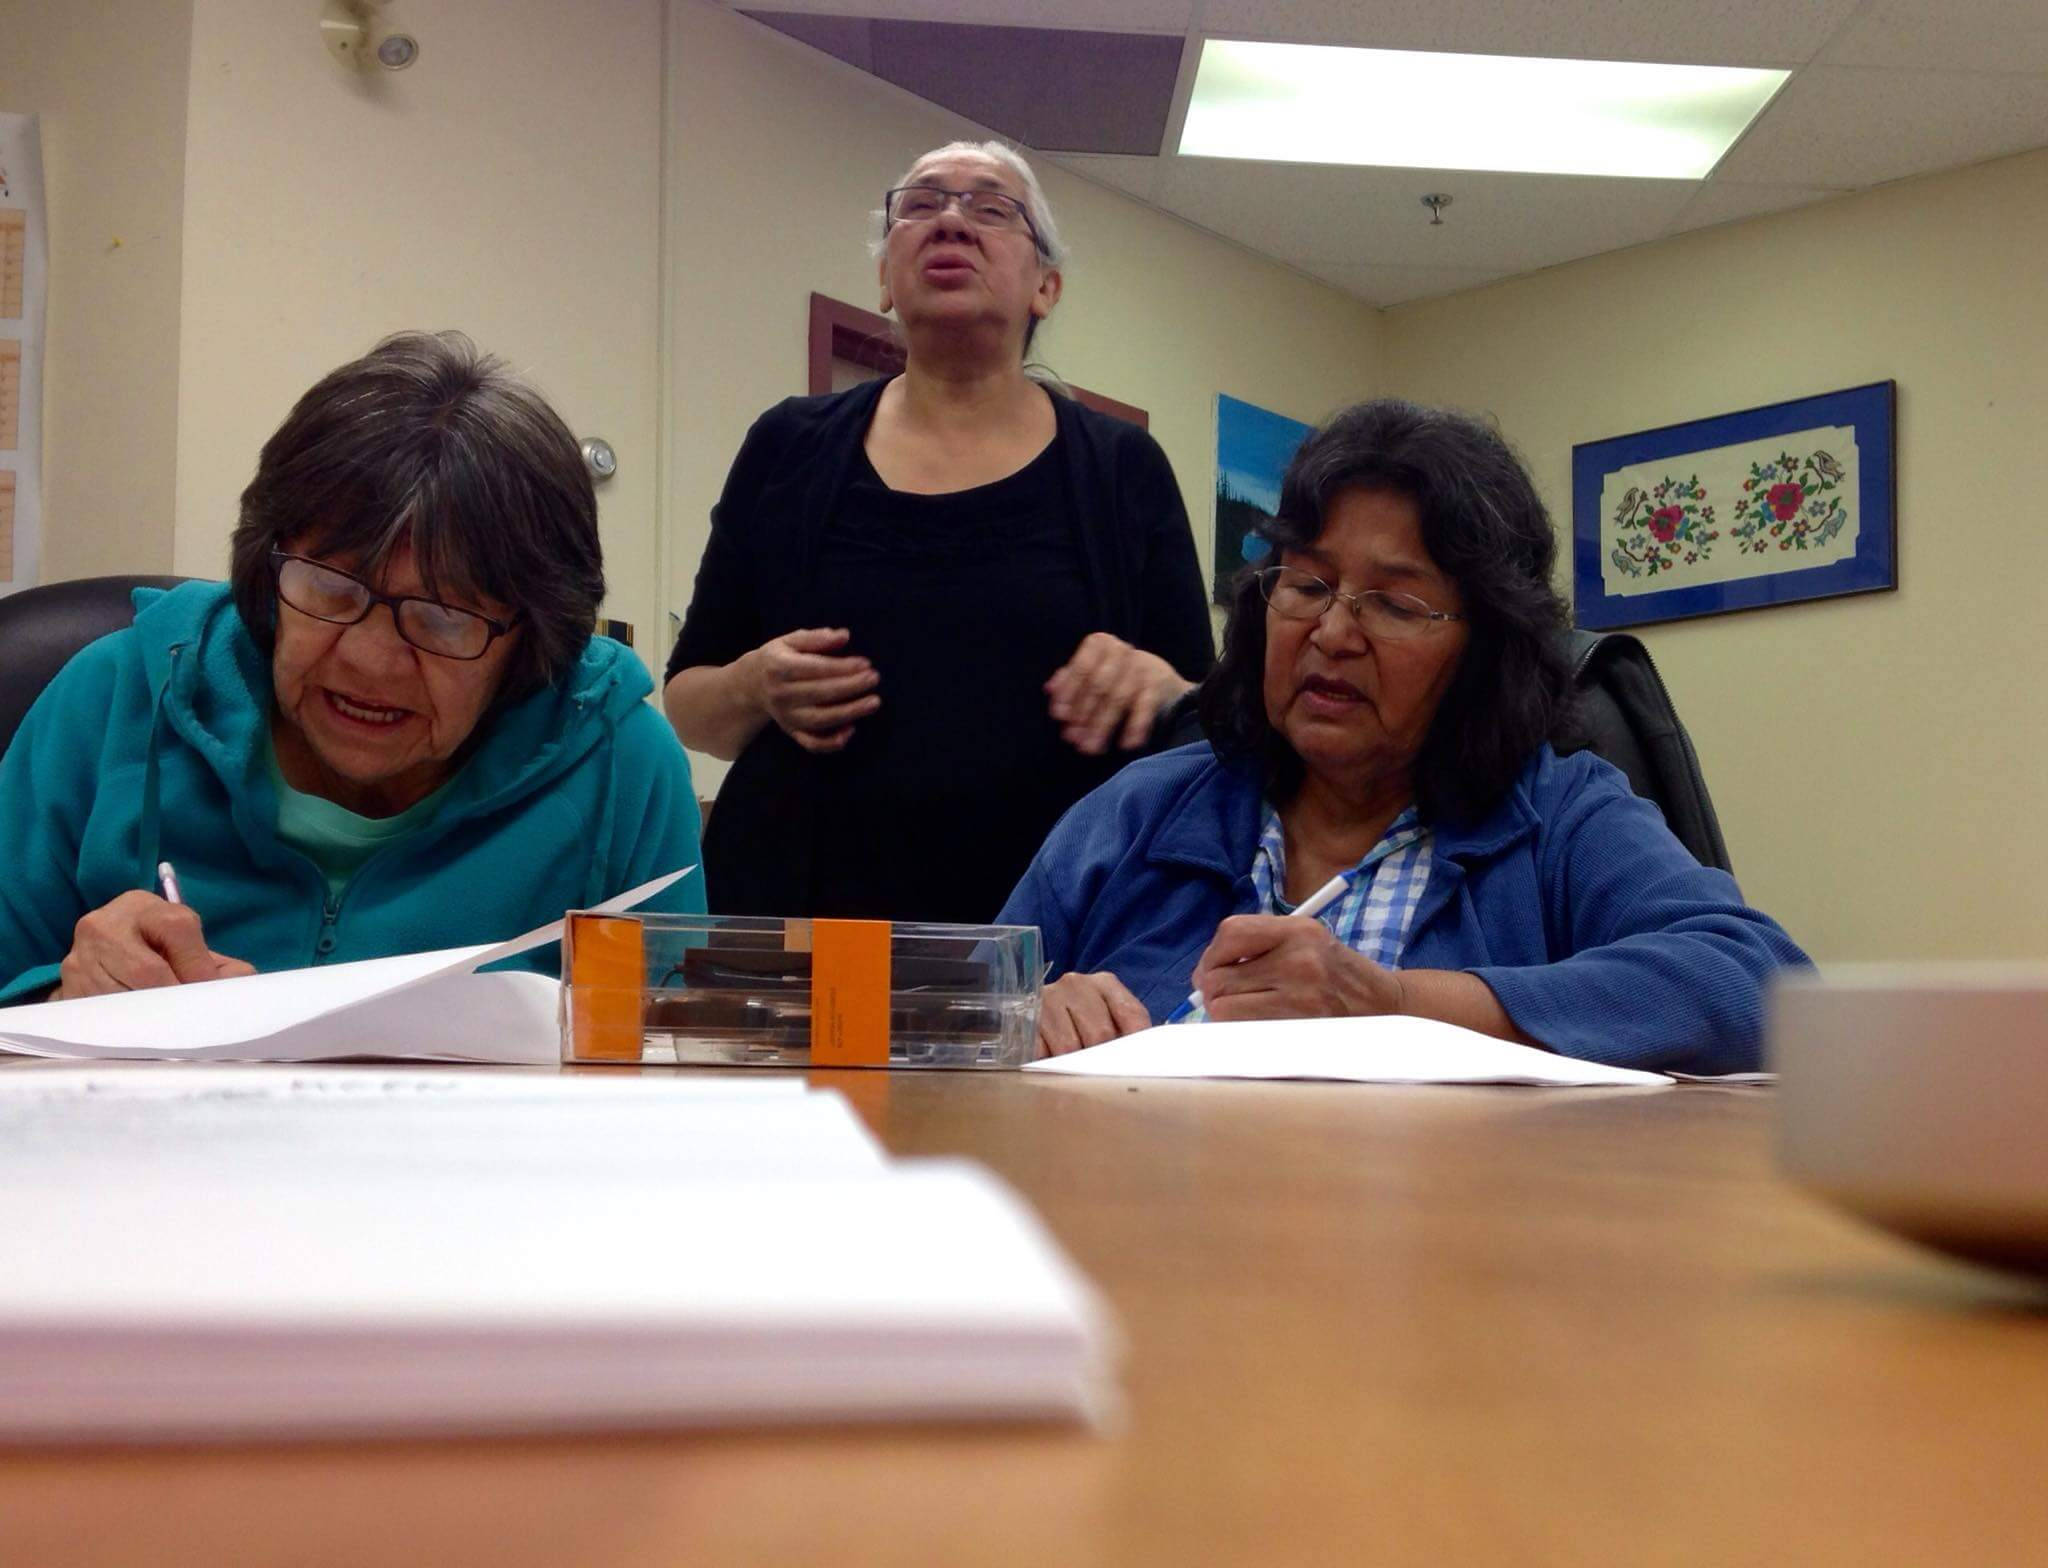 Moose Cree elders working on the talking dictionary. Photo courtesy of Anna Luisa Daigneault, Living Tongues Institute for Endangered Languages.